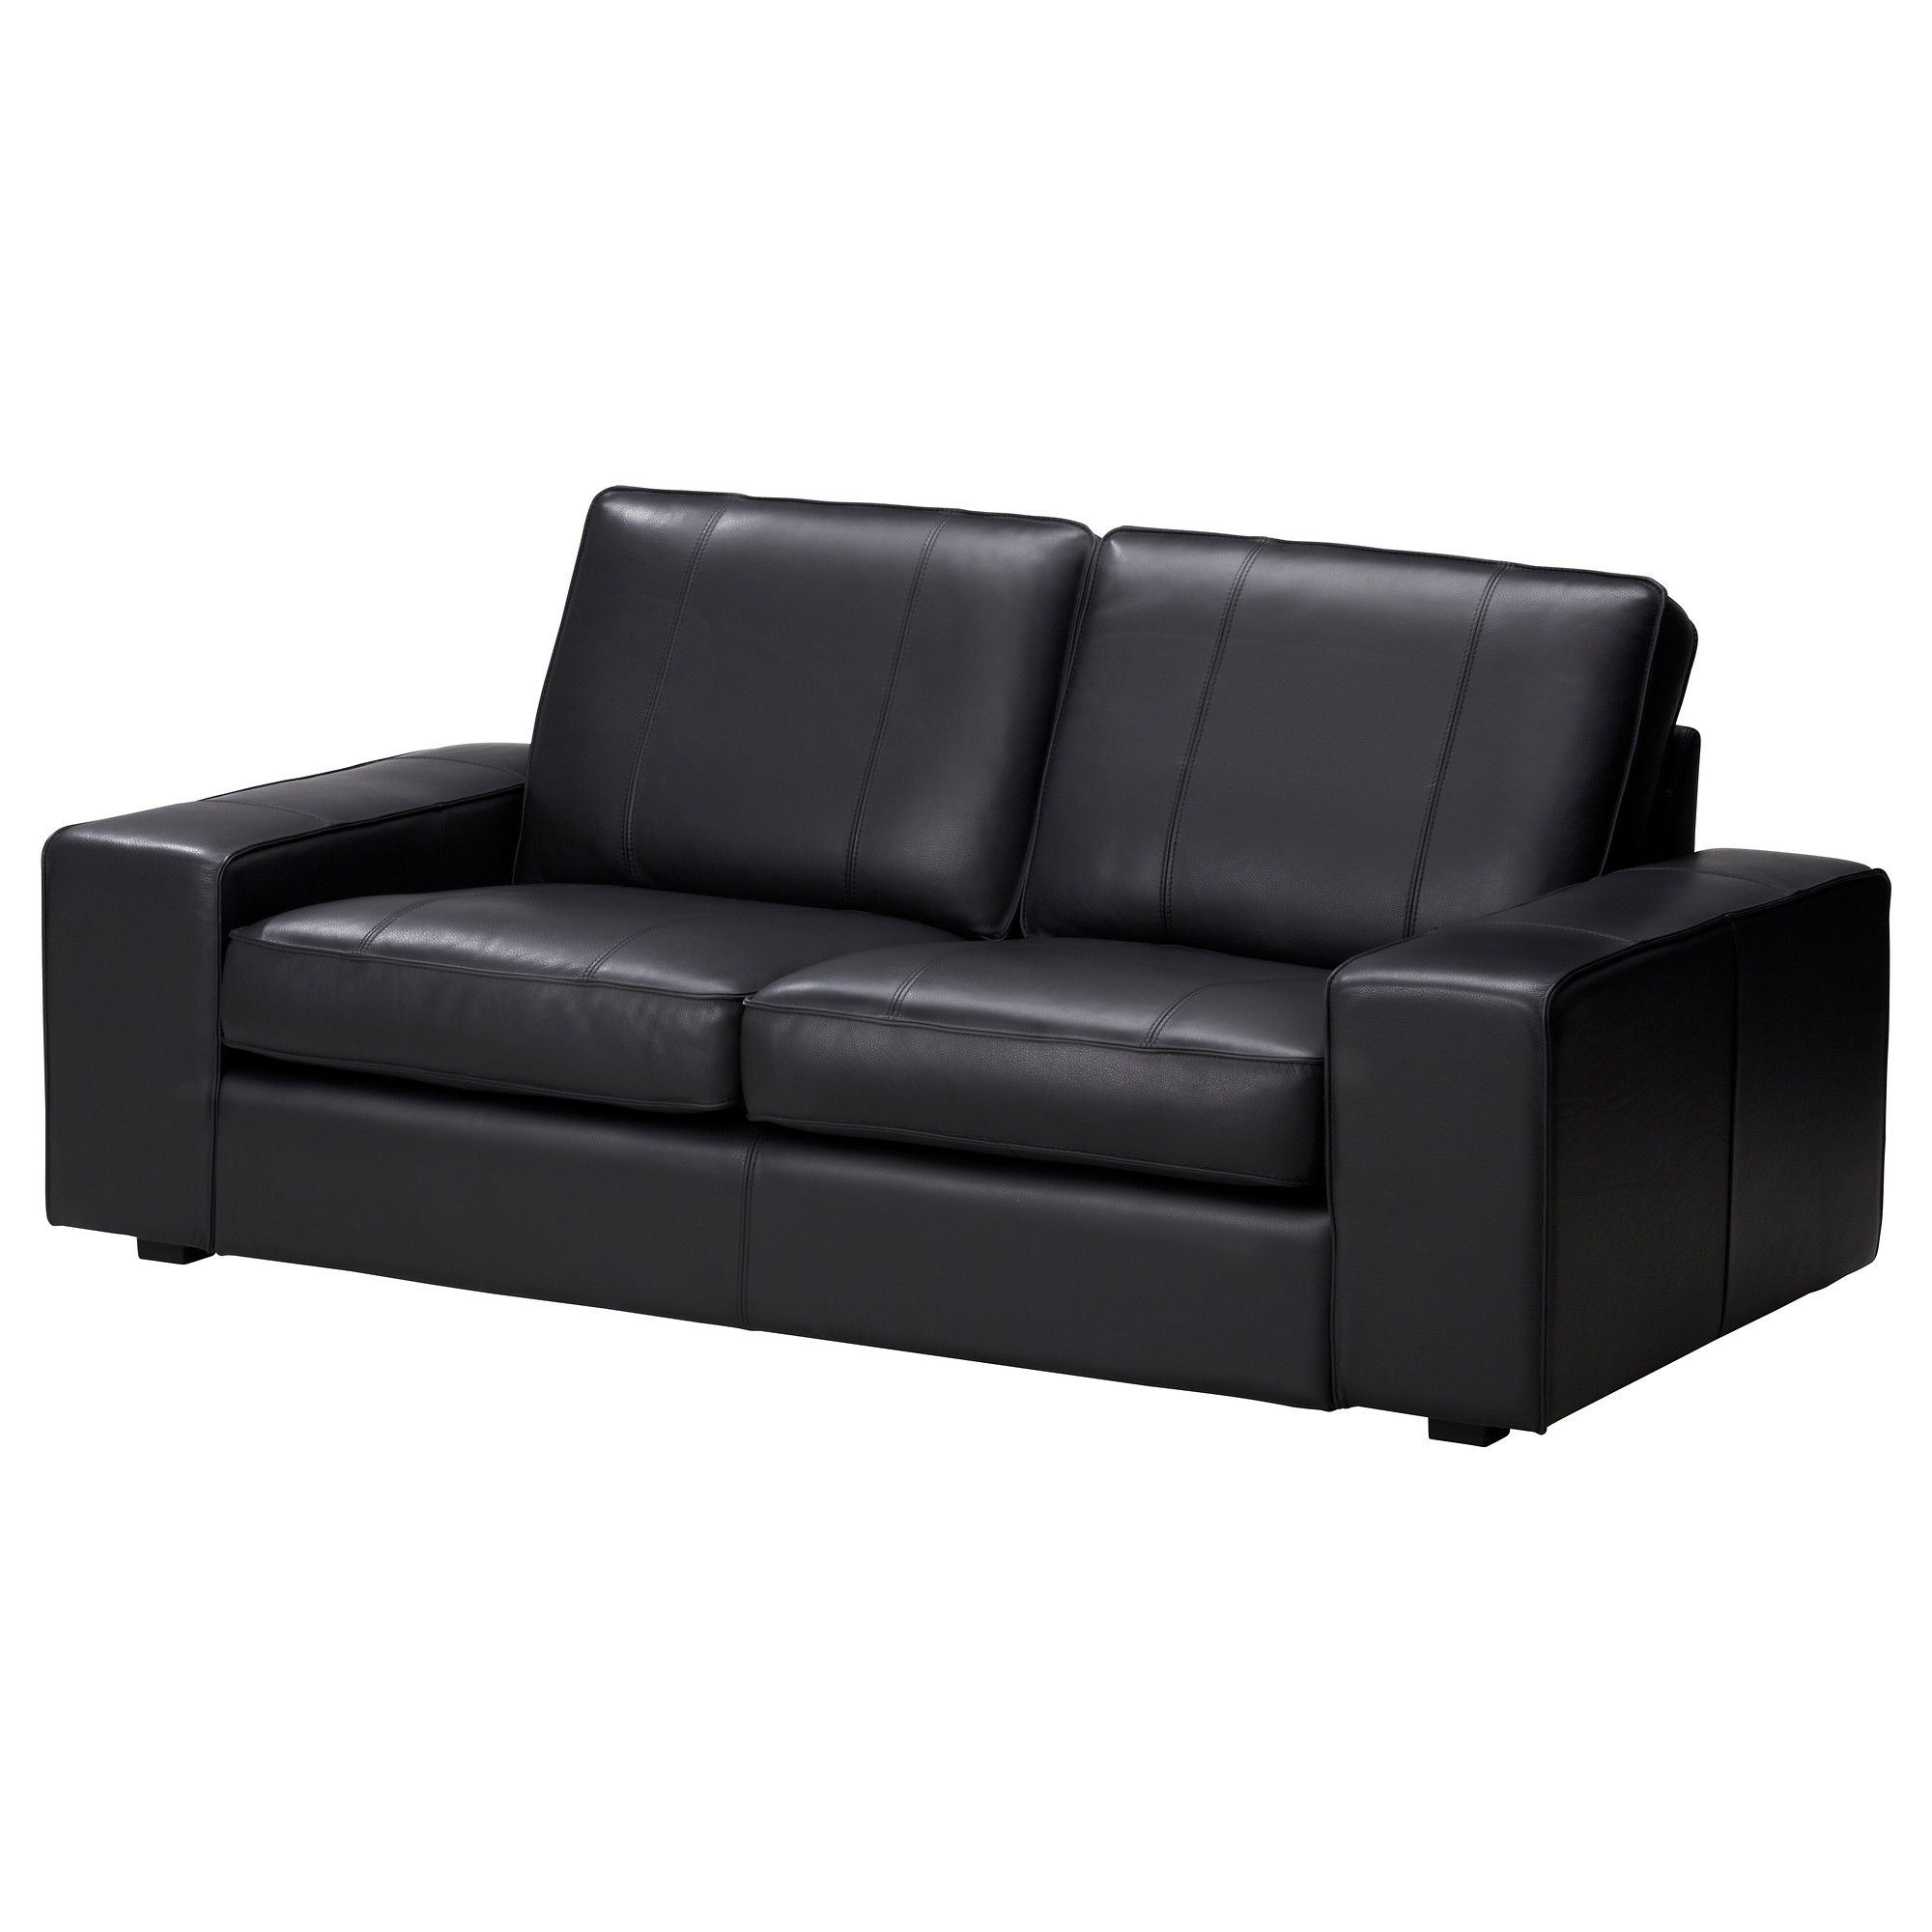 Kivik Two Seat Sofa Grannbomstad Black Ikea In Two Seater Sofas (Image 12 of 15)